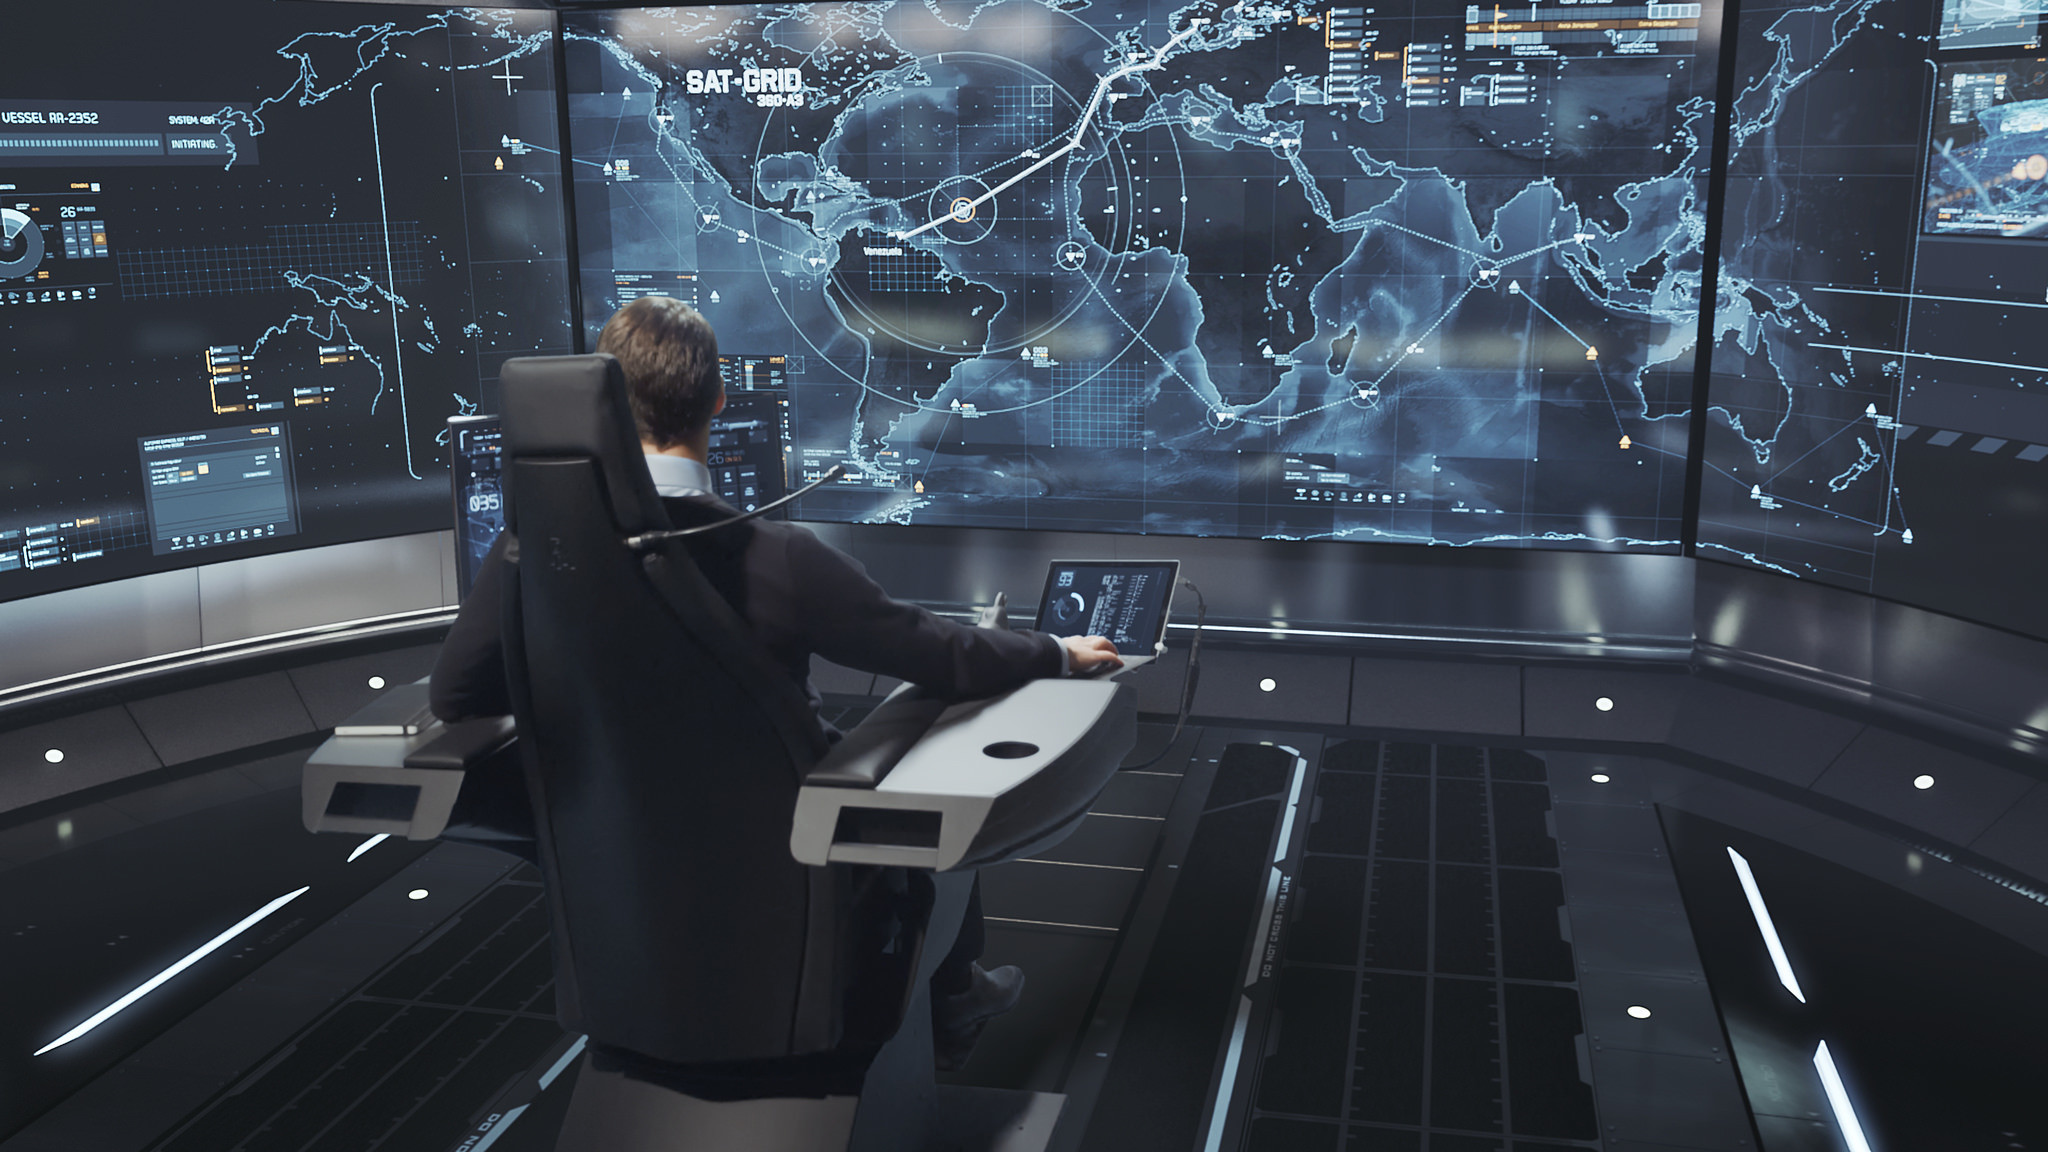 Autonomous ships could be monitored remotely from a command center